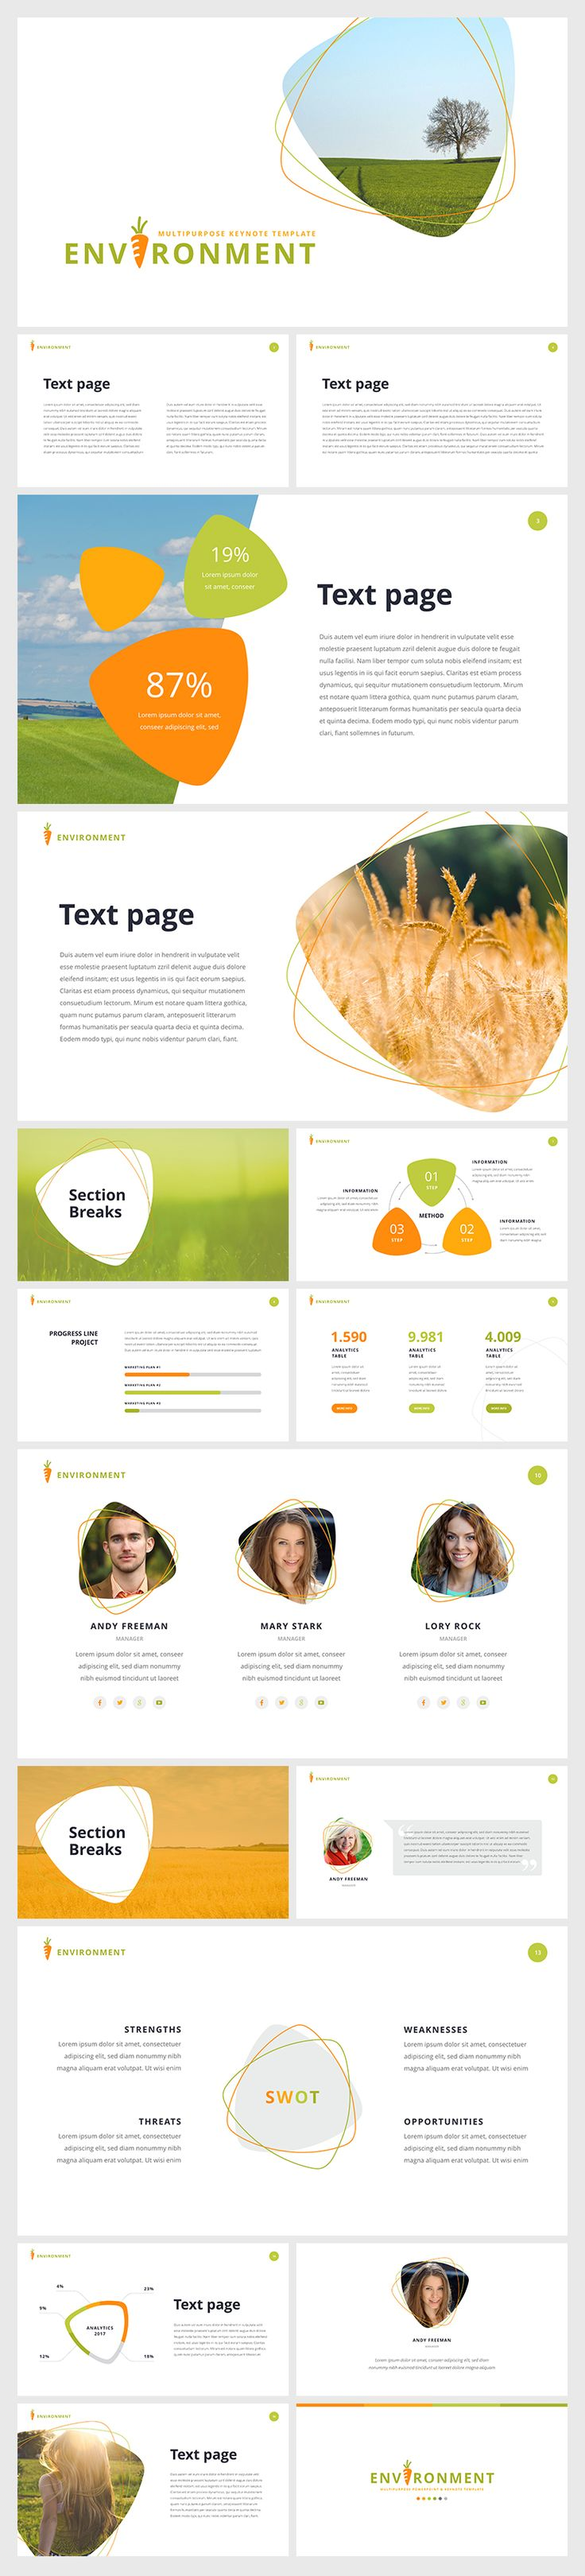 "PowerPoint Template "" Environment"" Download: https://hislide.io/product/environment-ppt/ #eco #nature #slide #ppt #pptx #presentation #design"